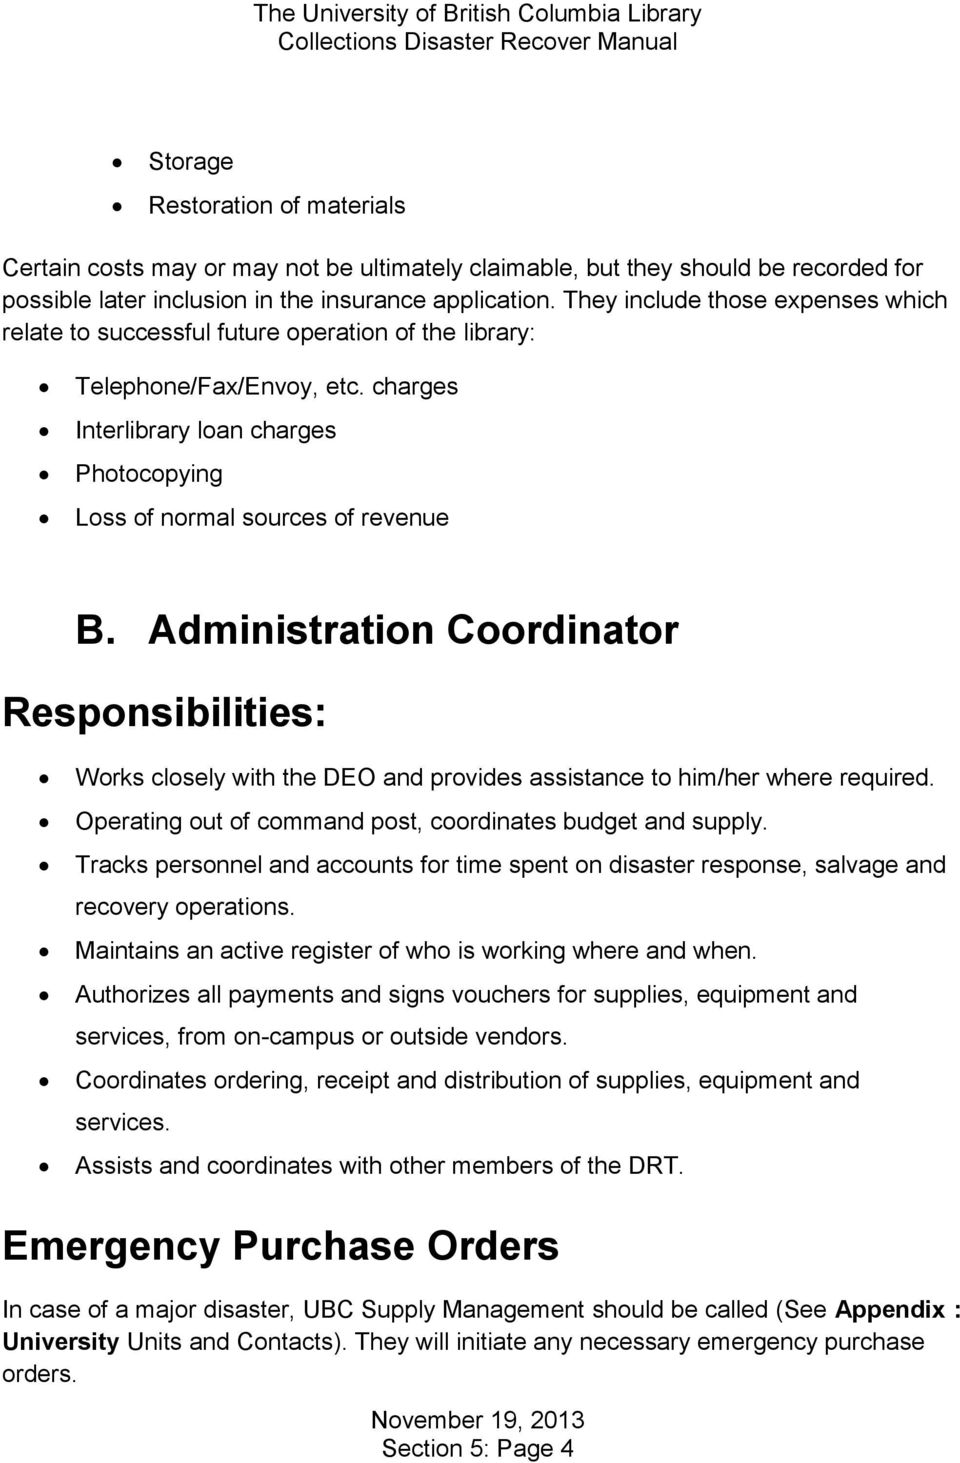 Administration Coordinator Responsibilities: Works closely with the DEO and provides assistance to him/her where required. Operating out of command post, coordinates budget and supply.